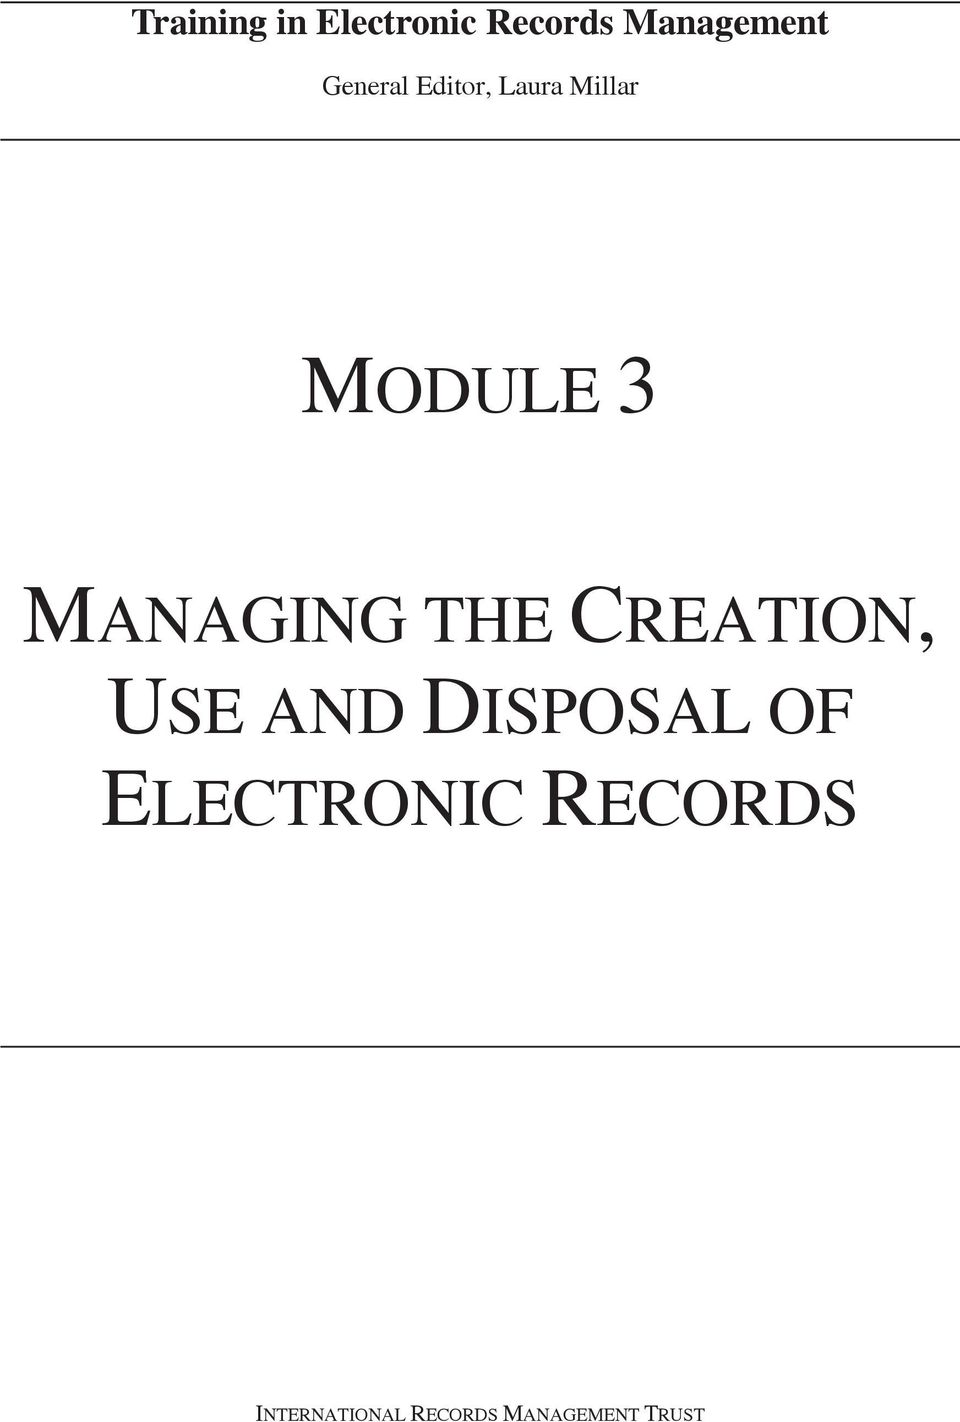 MANAGING THE CREATION, USE AND DISPOSAL OF